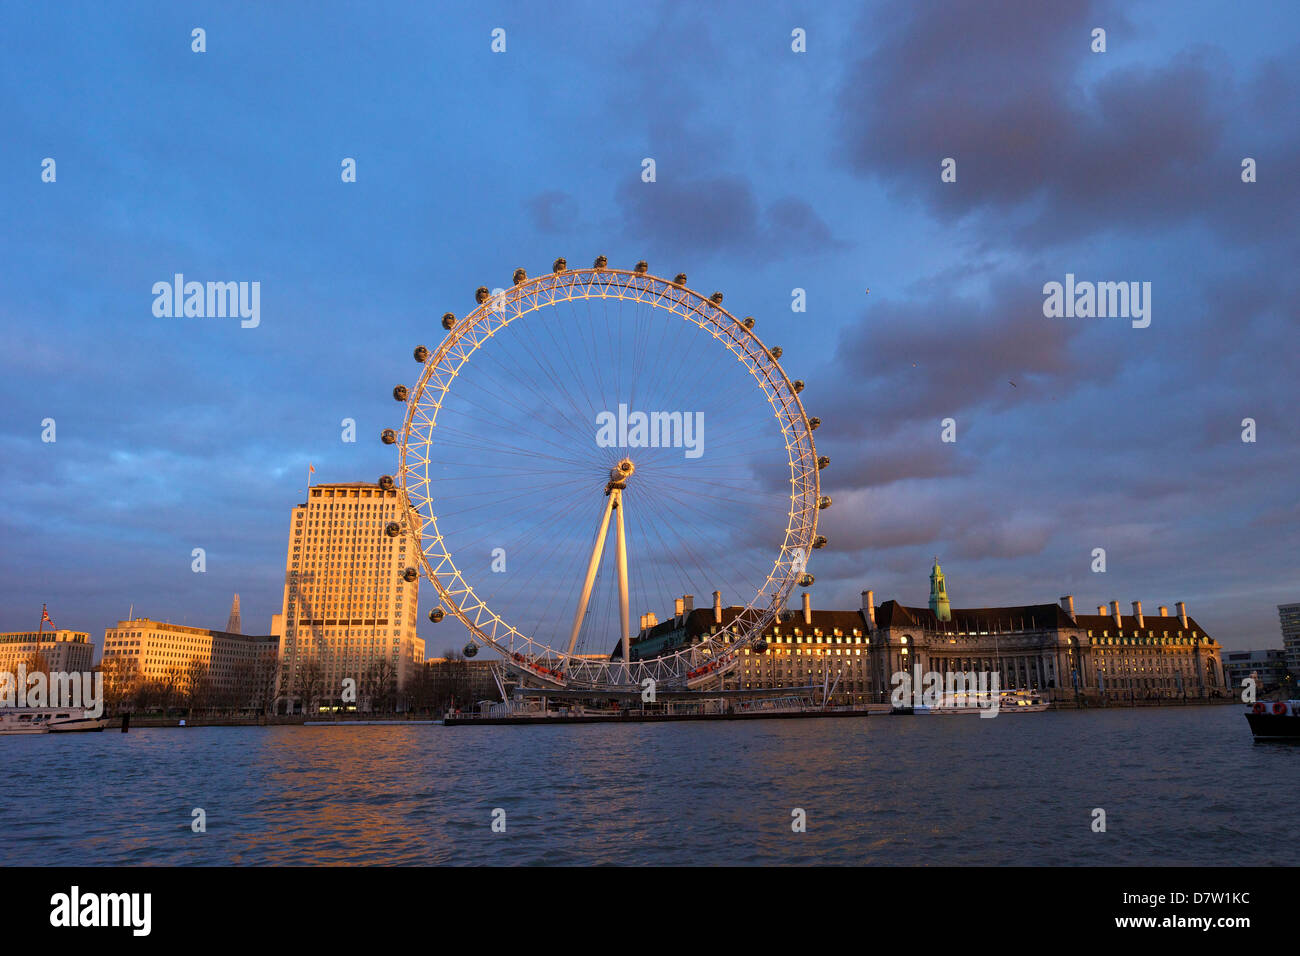 London Eye, River Thames, and City Hall from Victoria Embankment at sunset, London, England, United Kingdom Stock Photo